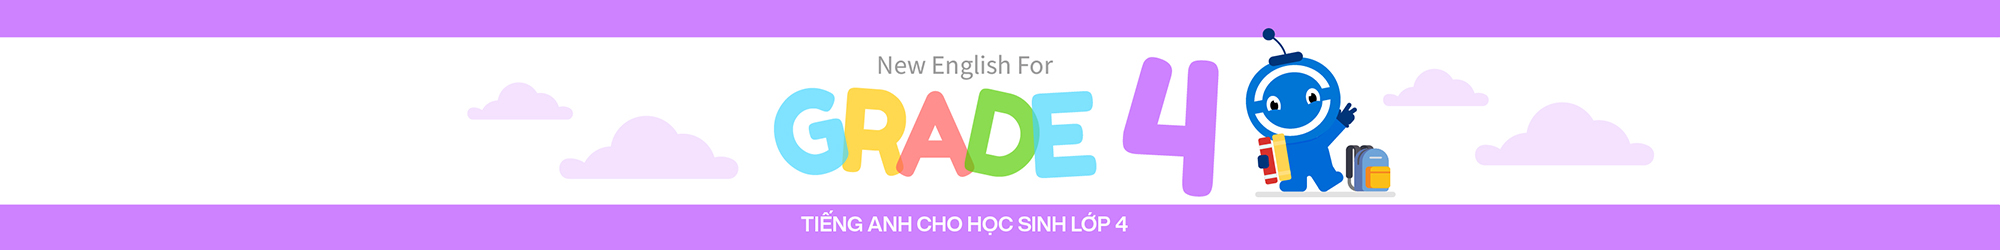 NEW ENGLISH FOR GRADE 4